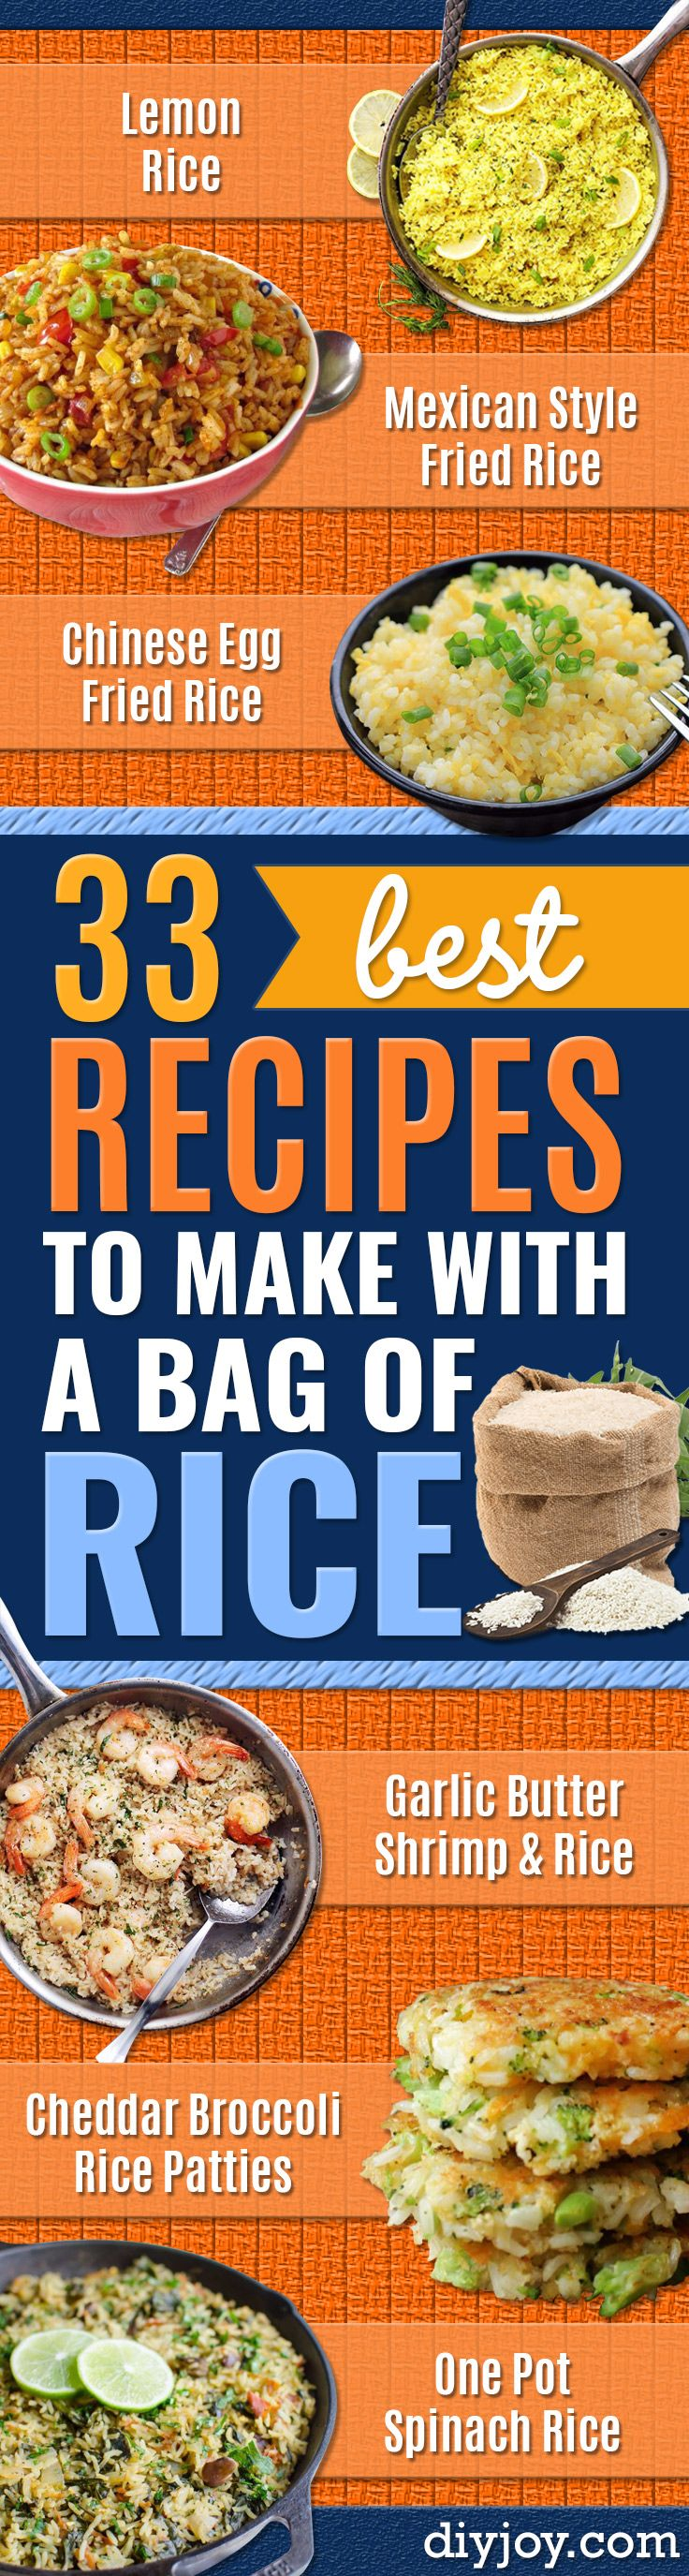 Best Rice Recipes - Lemon Rice - Easy Ideas for Quick Meals Made From a Bag of Rice - Healthy Recipes With Brown, White and Arborio Rice - Cheesy, Fried, Asian, Mexican Flavored Dinner Dishes and Side Dishes - DIY Projects and Crafts by DIY JOY http://diyjoy.com/best-rice-recipes